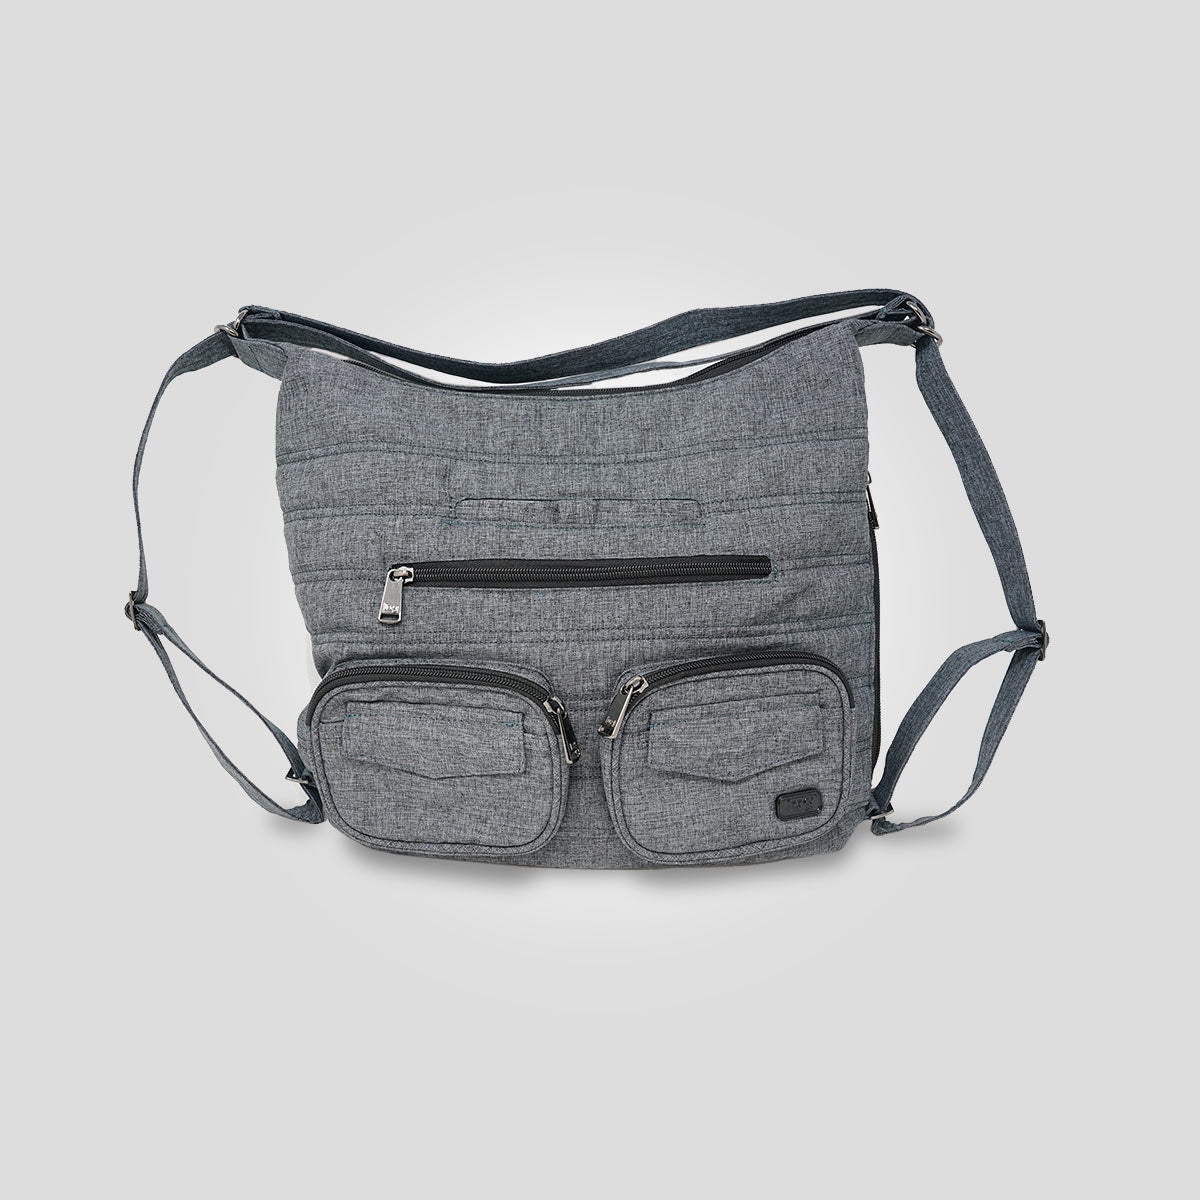 Zipliner Bag - Heather Grey